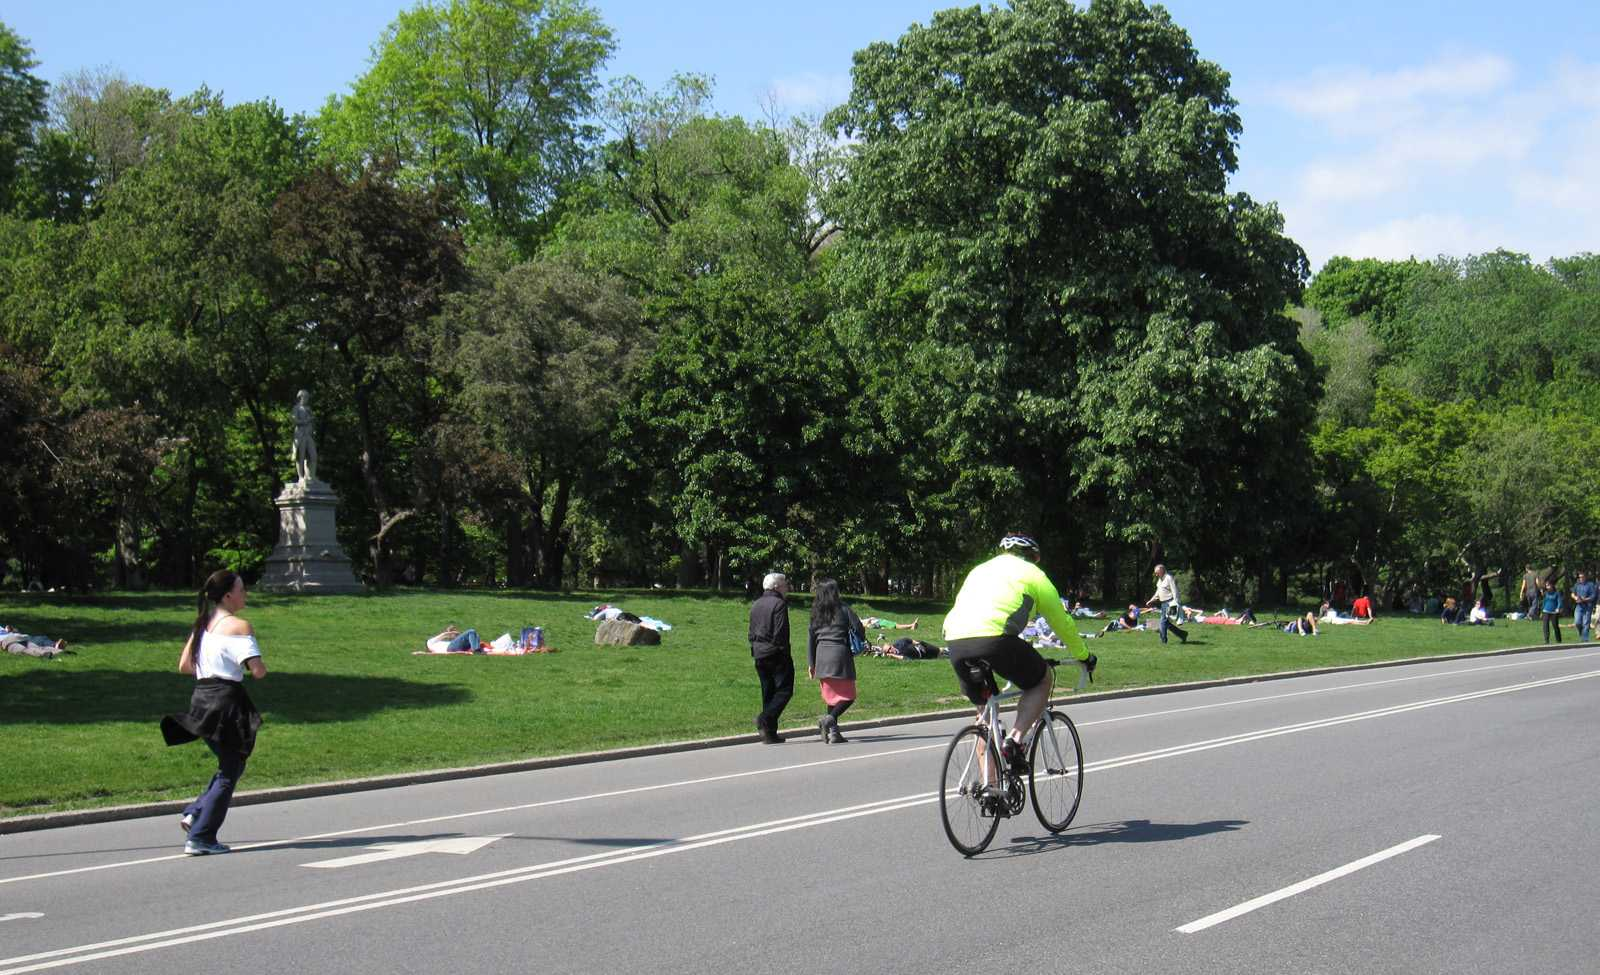 Person riding a bike in a park